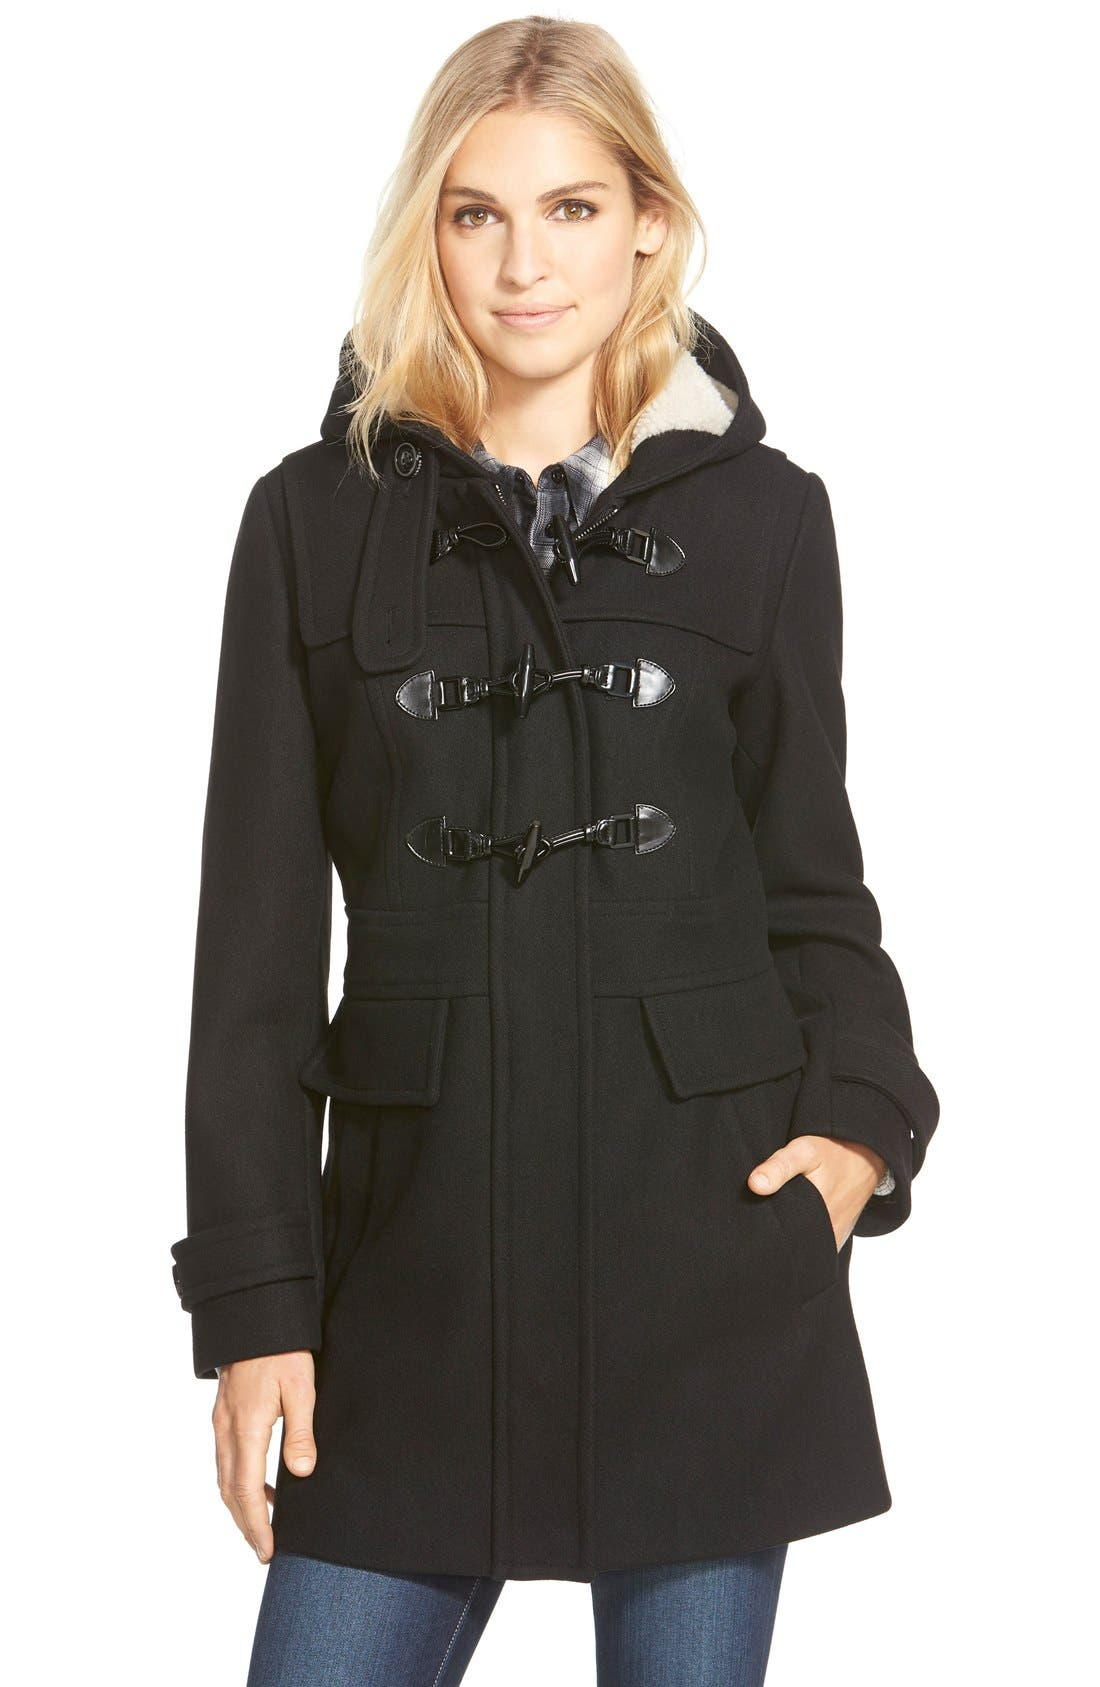 Main Image - London Fog Wool Blend Duffle Coat with Faux Shearling Lined Hood